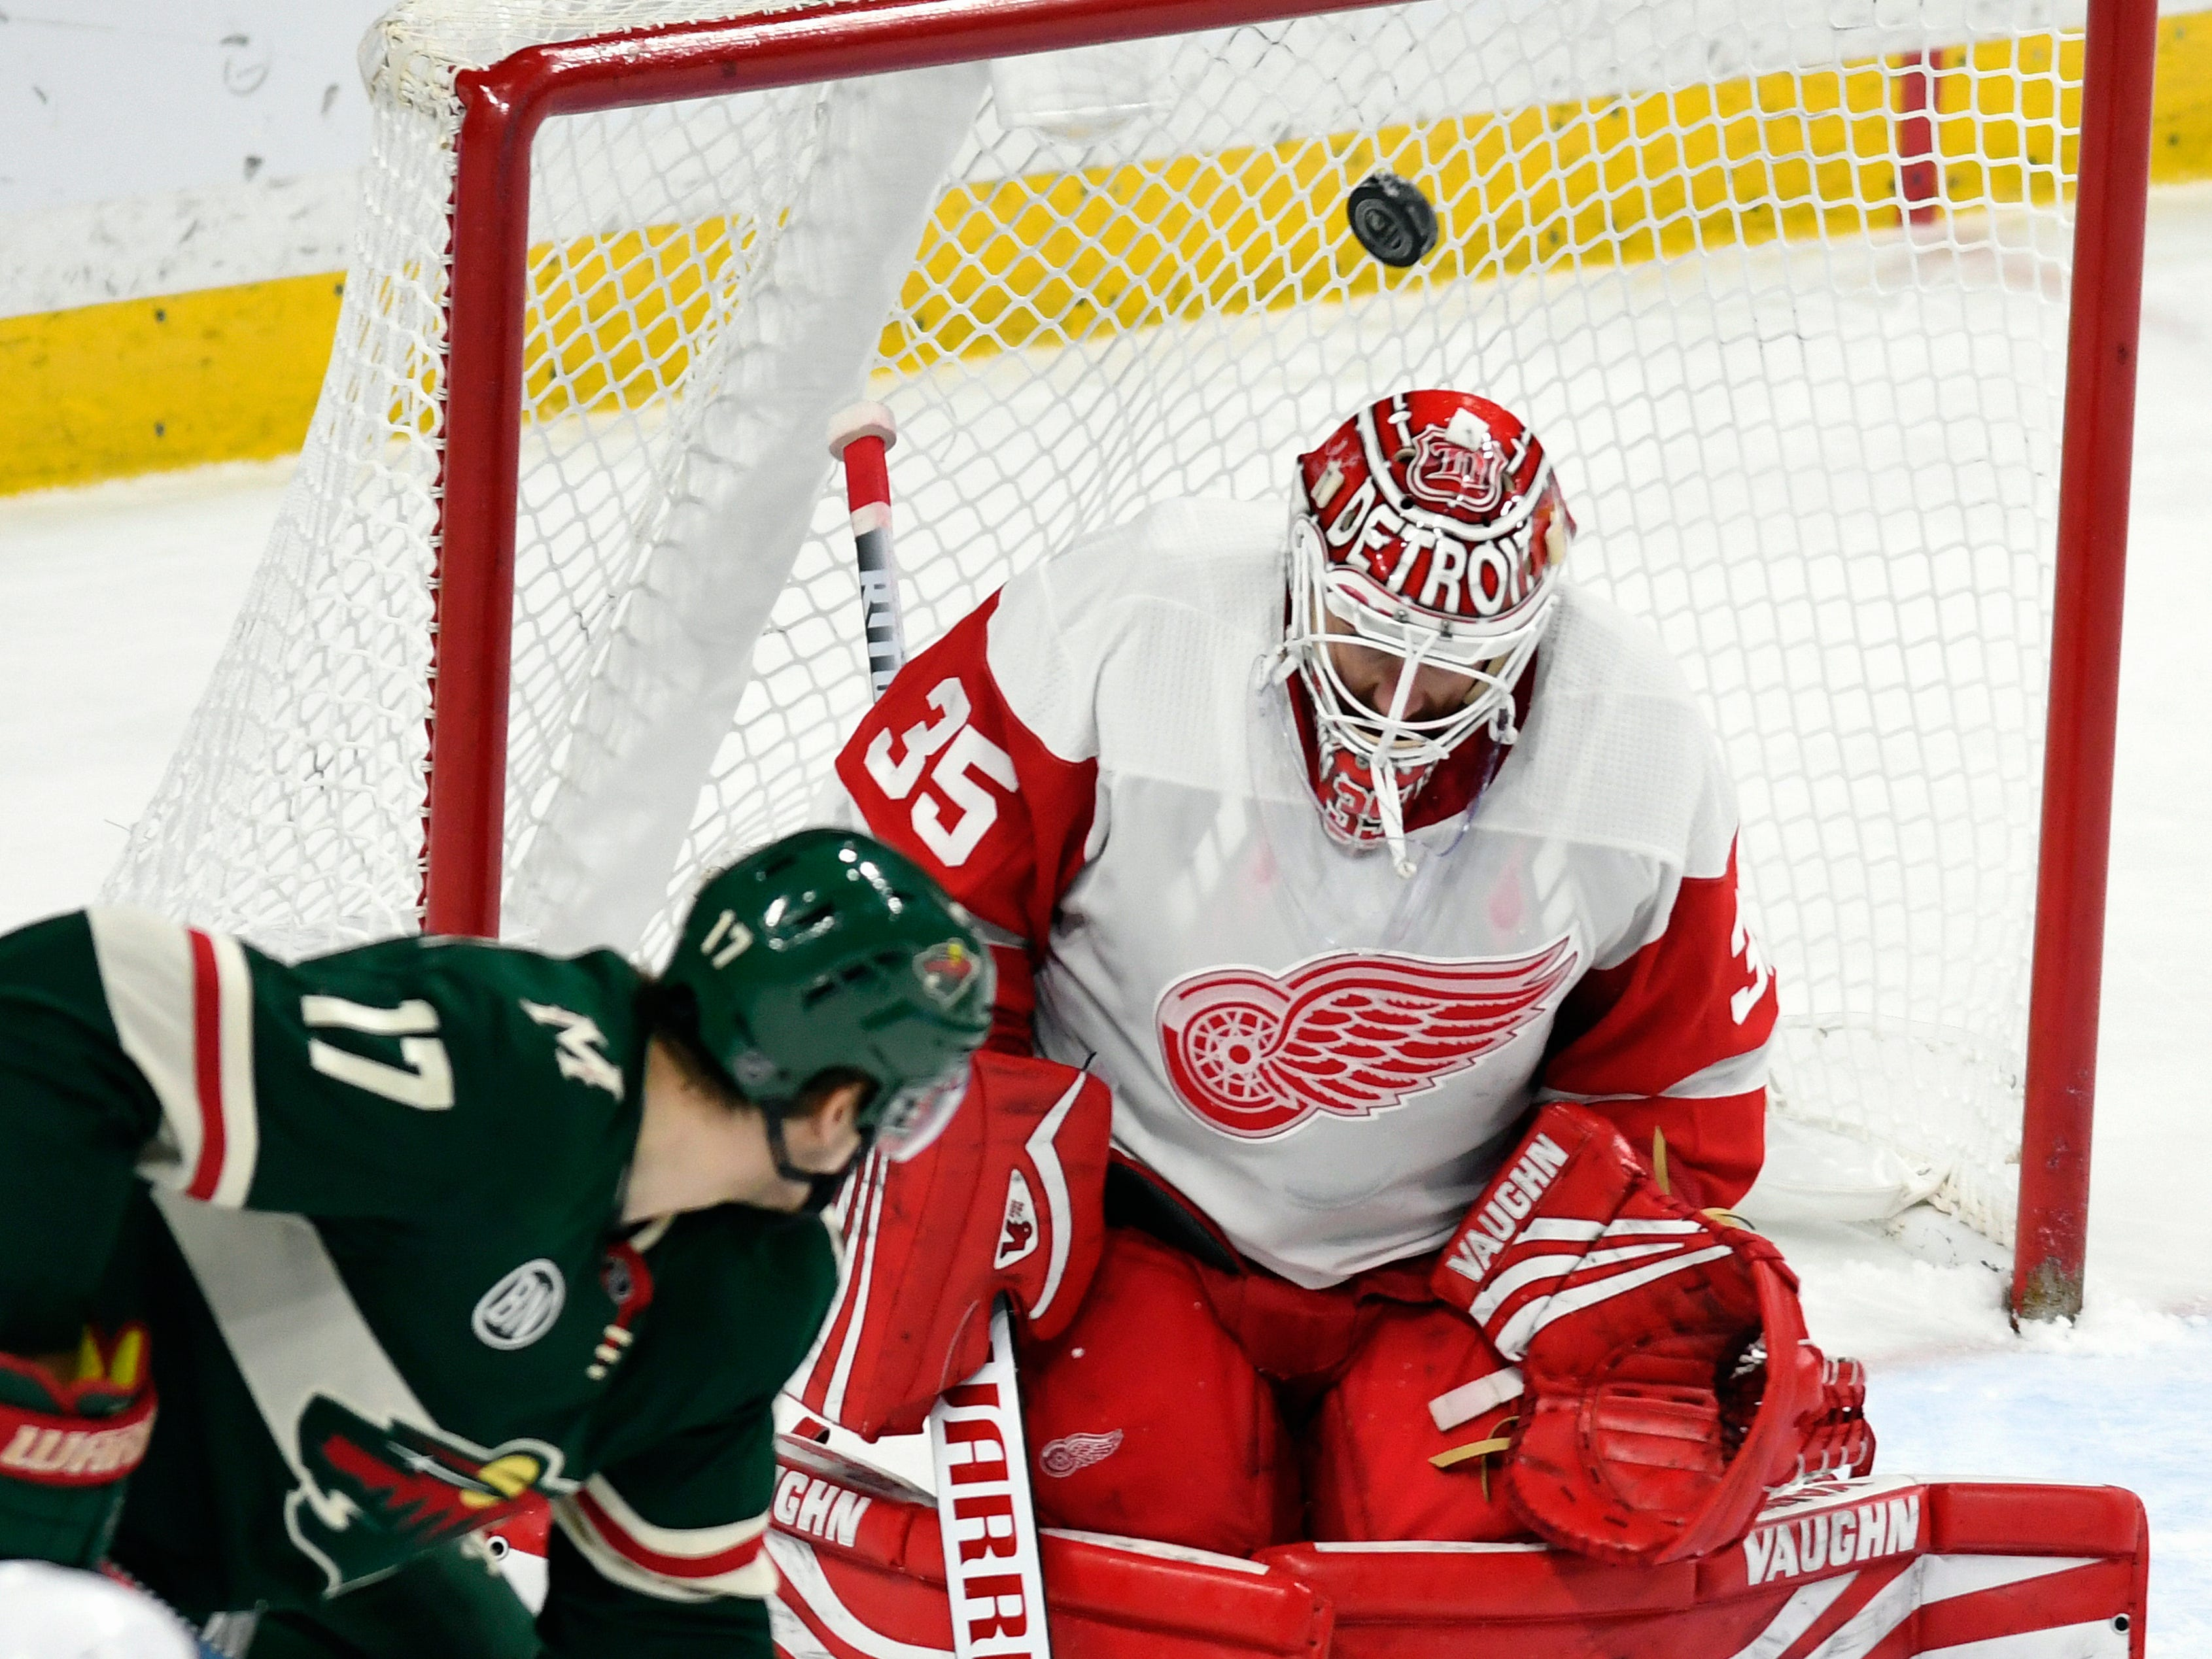 Minnesota Wild's Marcus Foligno (17) tips the puck up over Detroit Red Wings goalie Jimmy Howard during the third period of an NHL hockey game Saturday, Jan. 12, 2019, in St. Paul, Minn. (AP Photo/Tom Olmscheid)